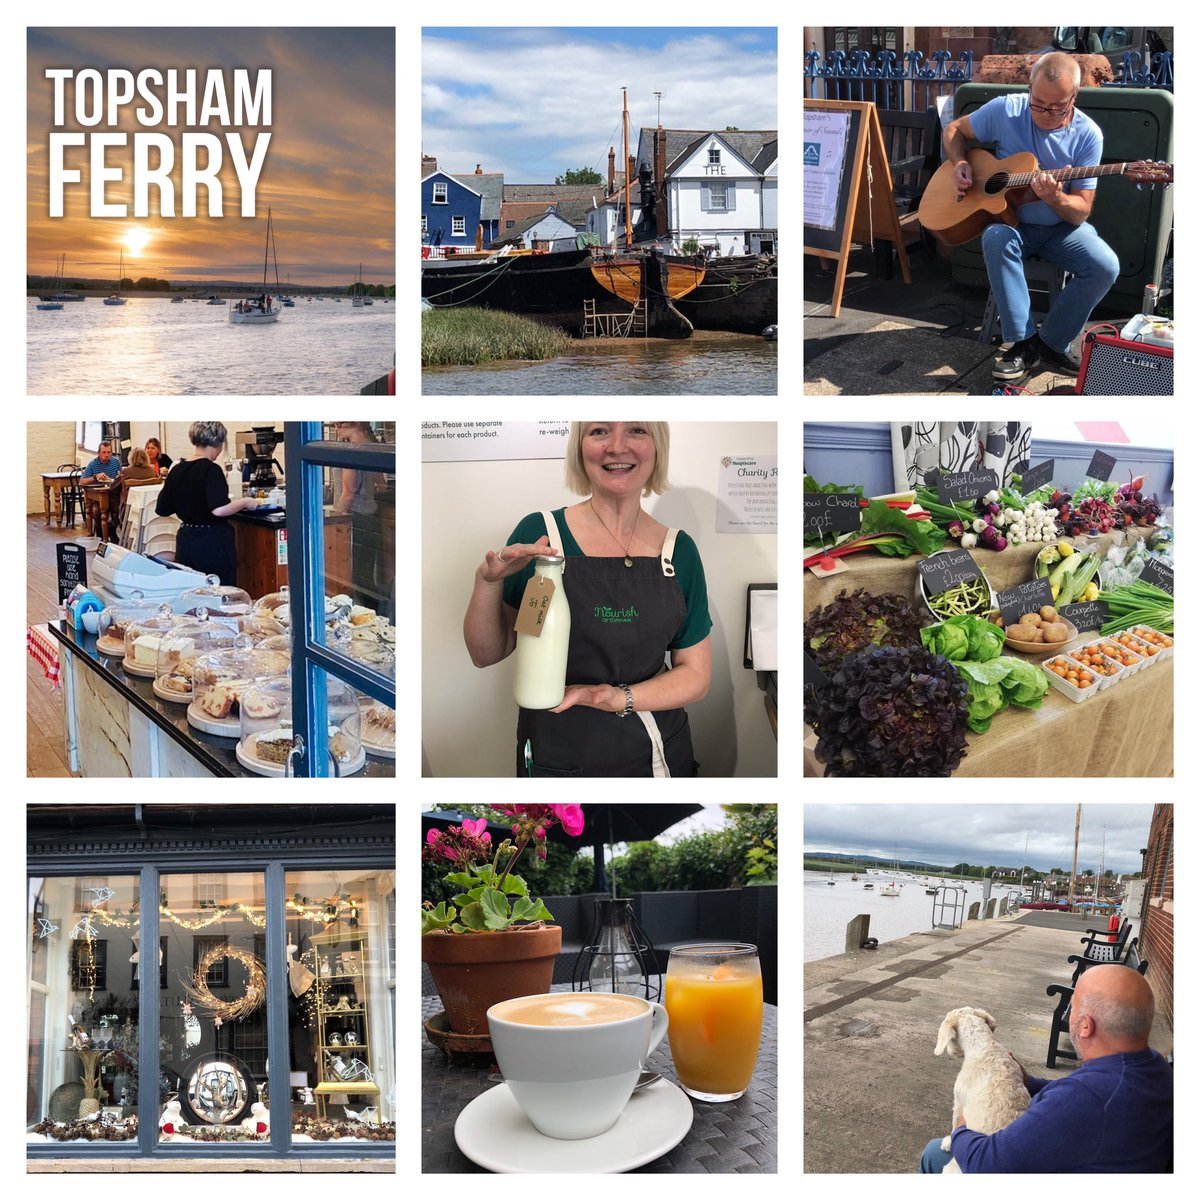 LoveTopsham photo